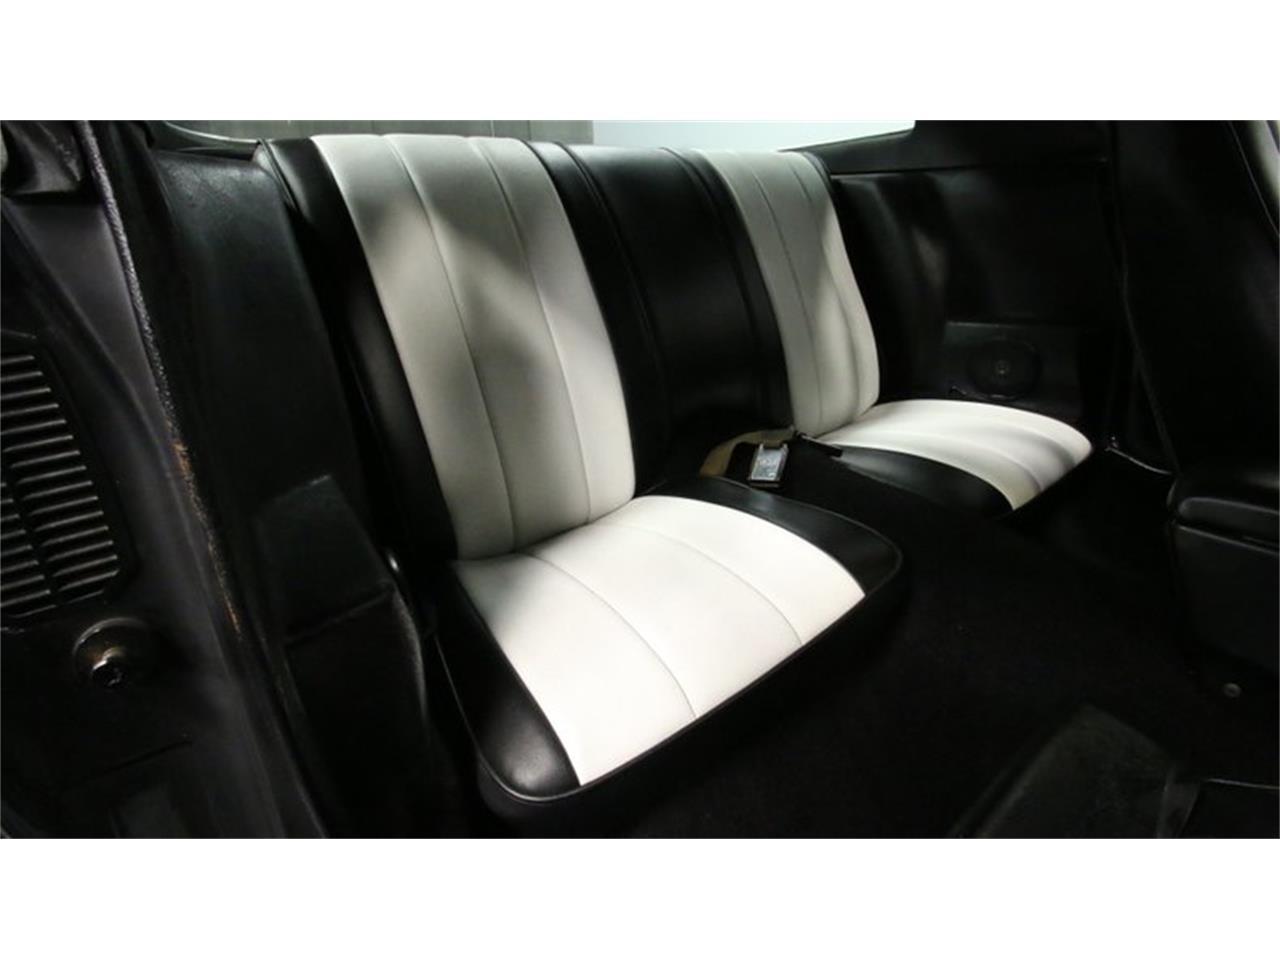 Large Picture of '75 Chevrolet Camaro located in Lithia Springs Georgia - $13,995.00 Offered by Streetside Classics - Atlanta - QCUL